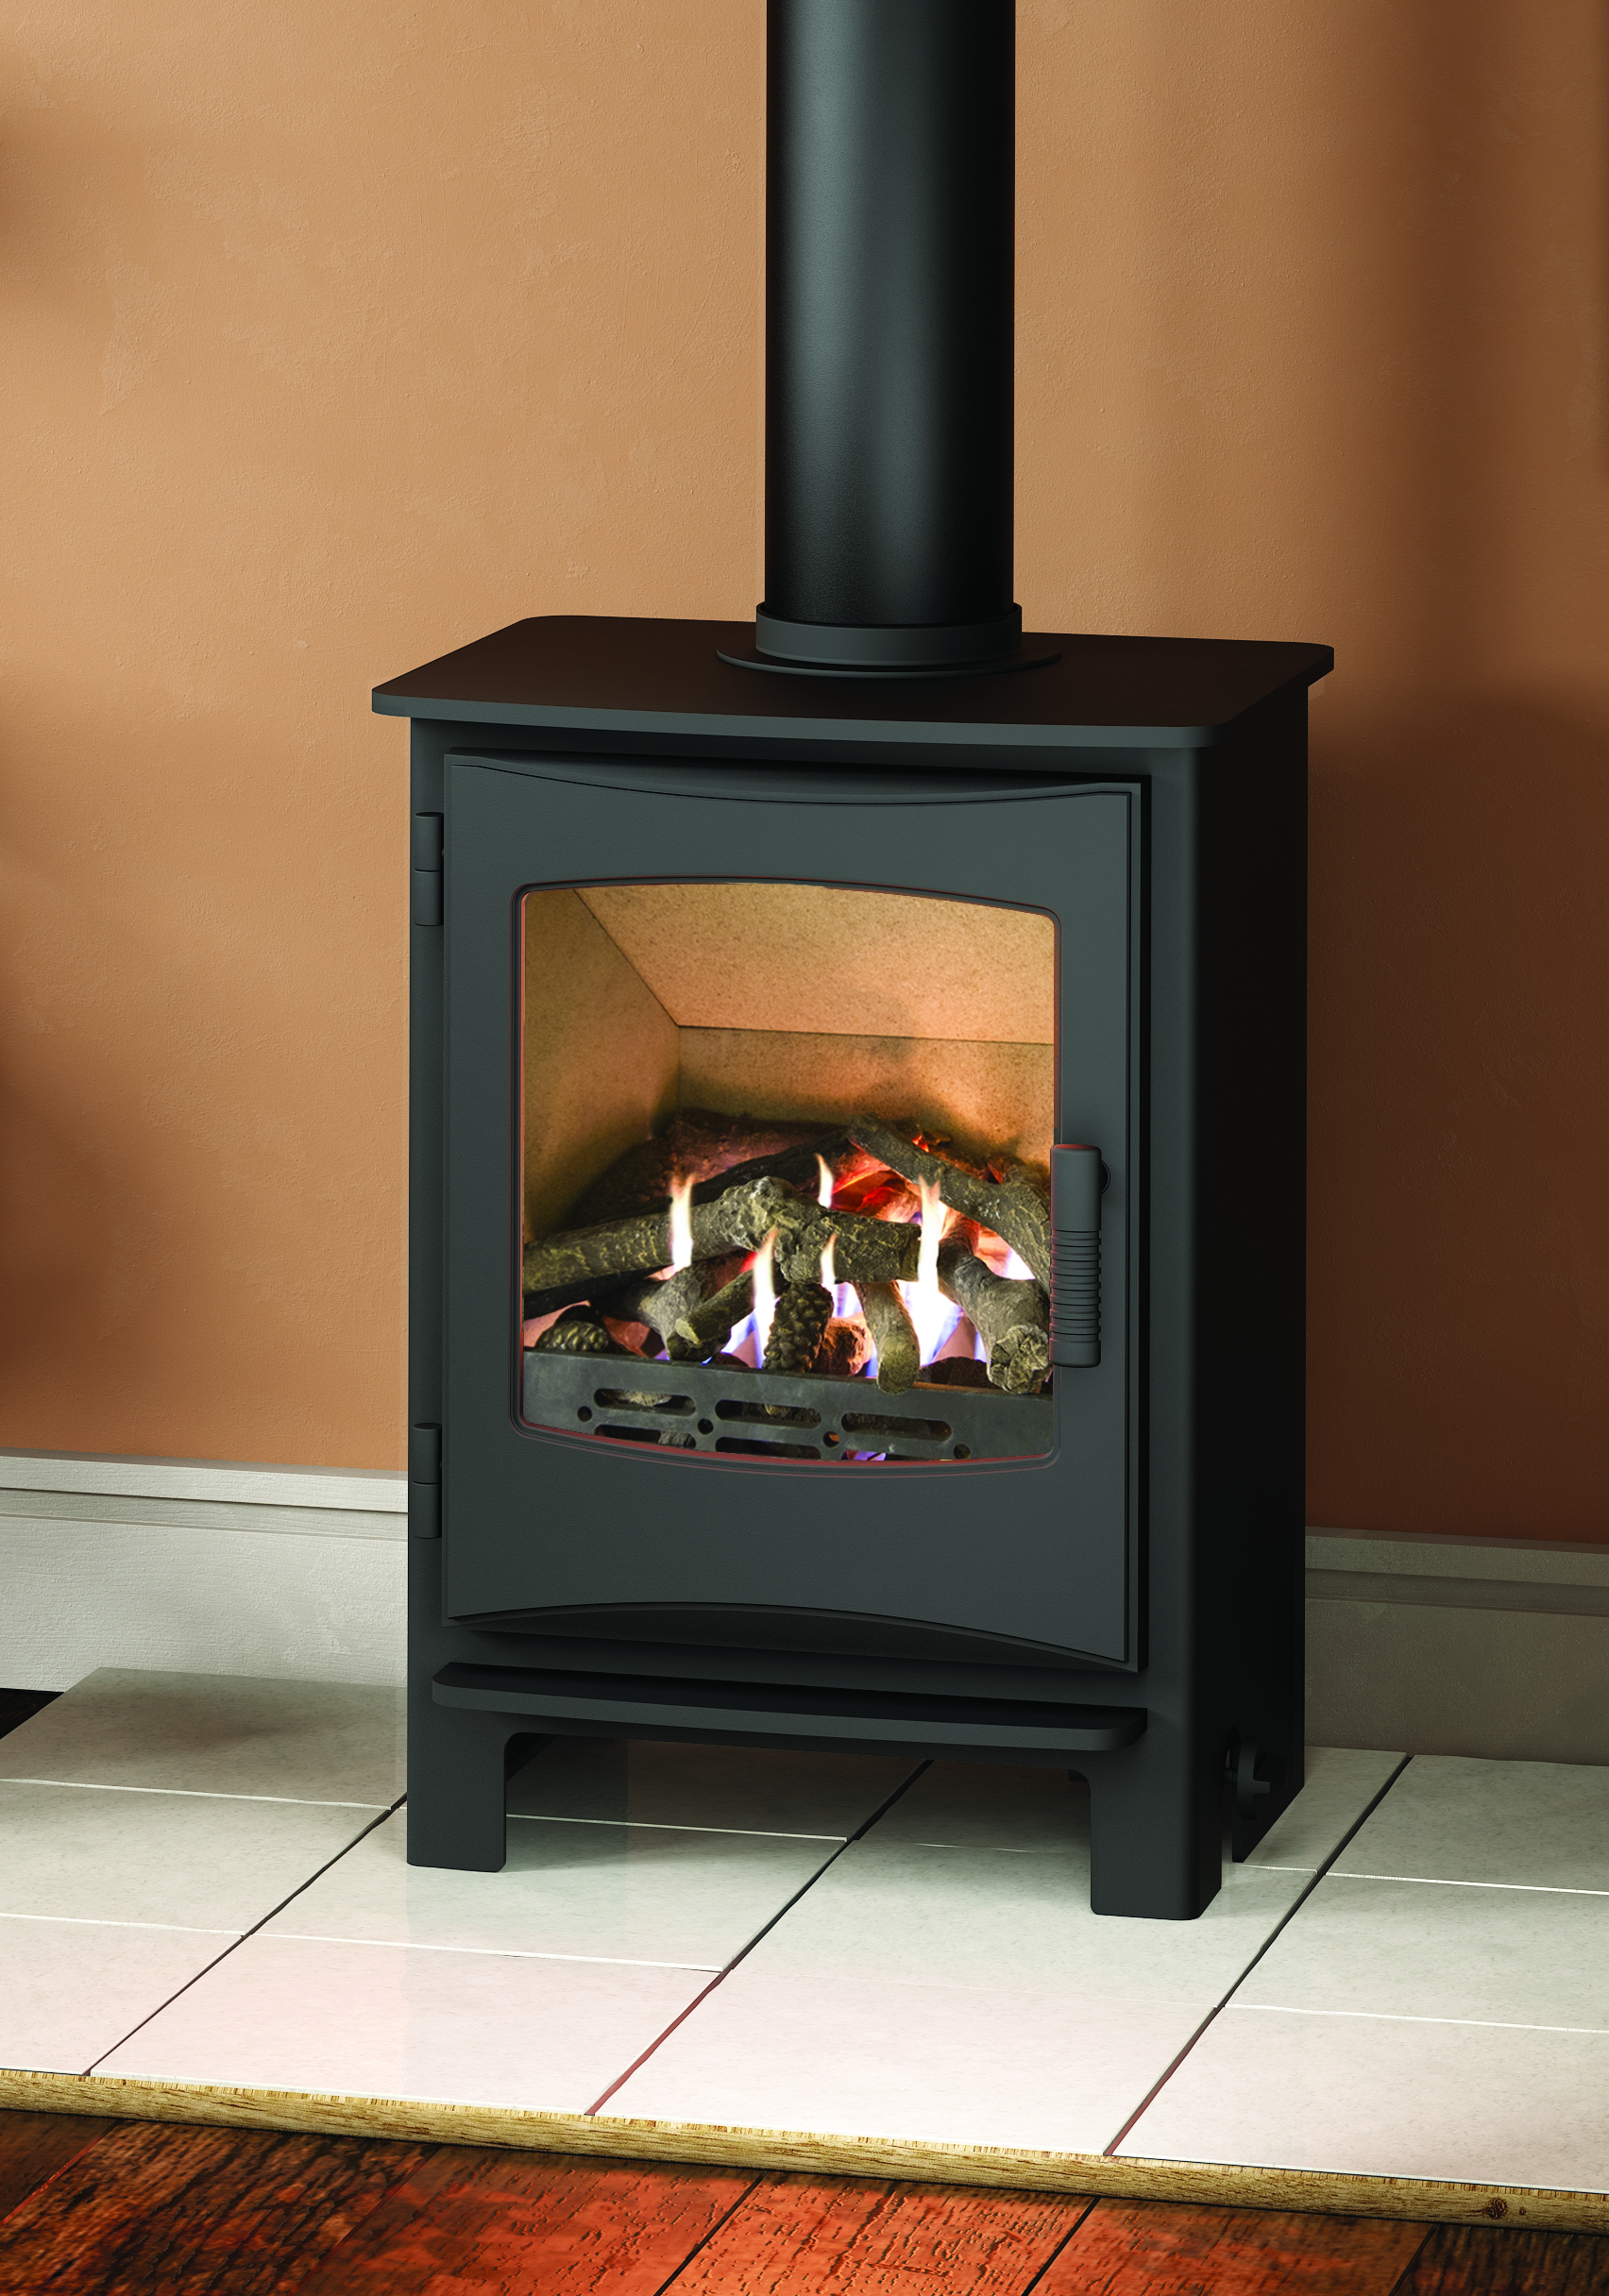 4.6KW Ignite 5 Conventional Gas Stove